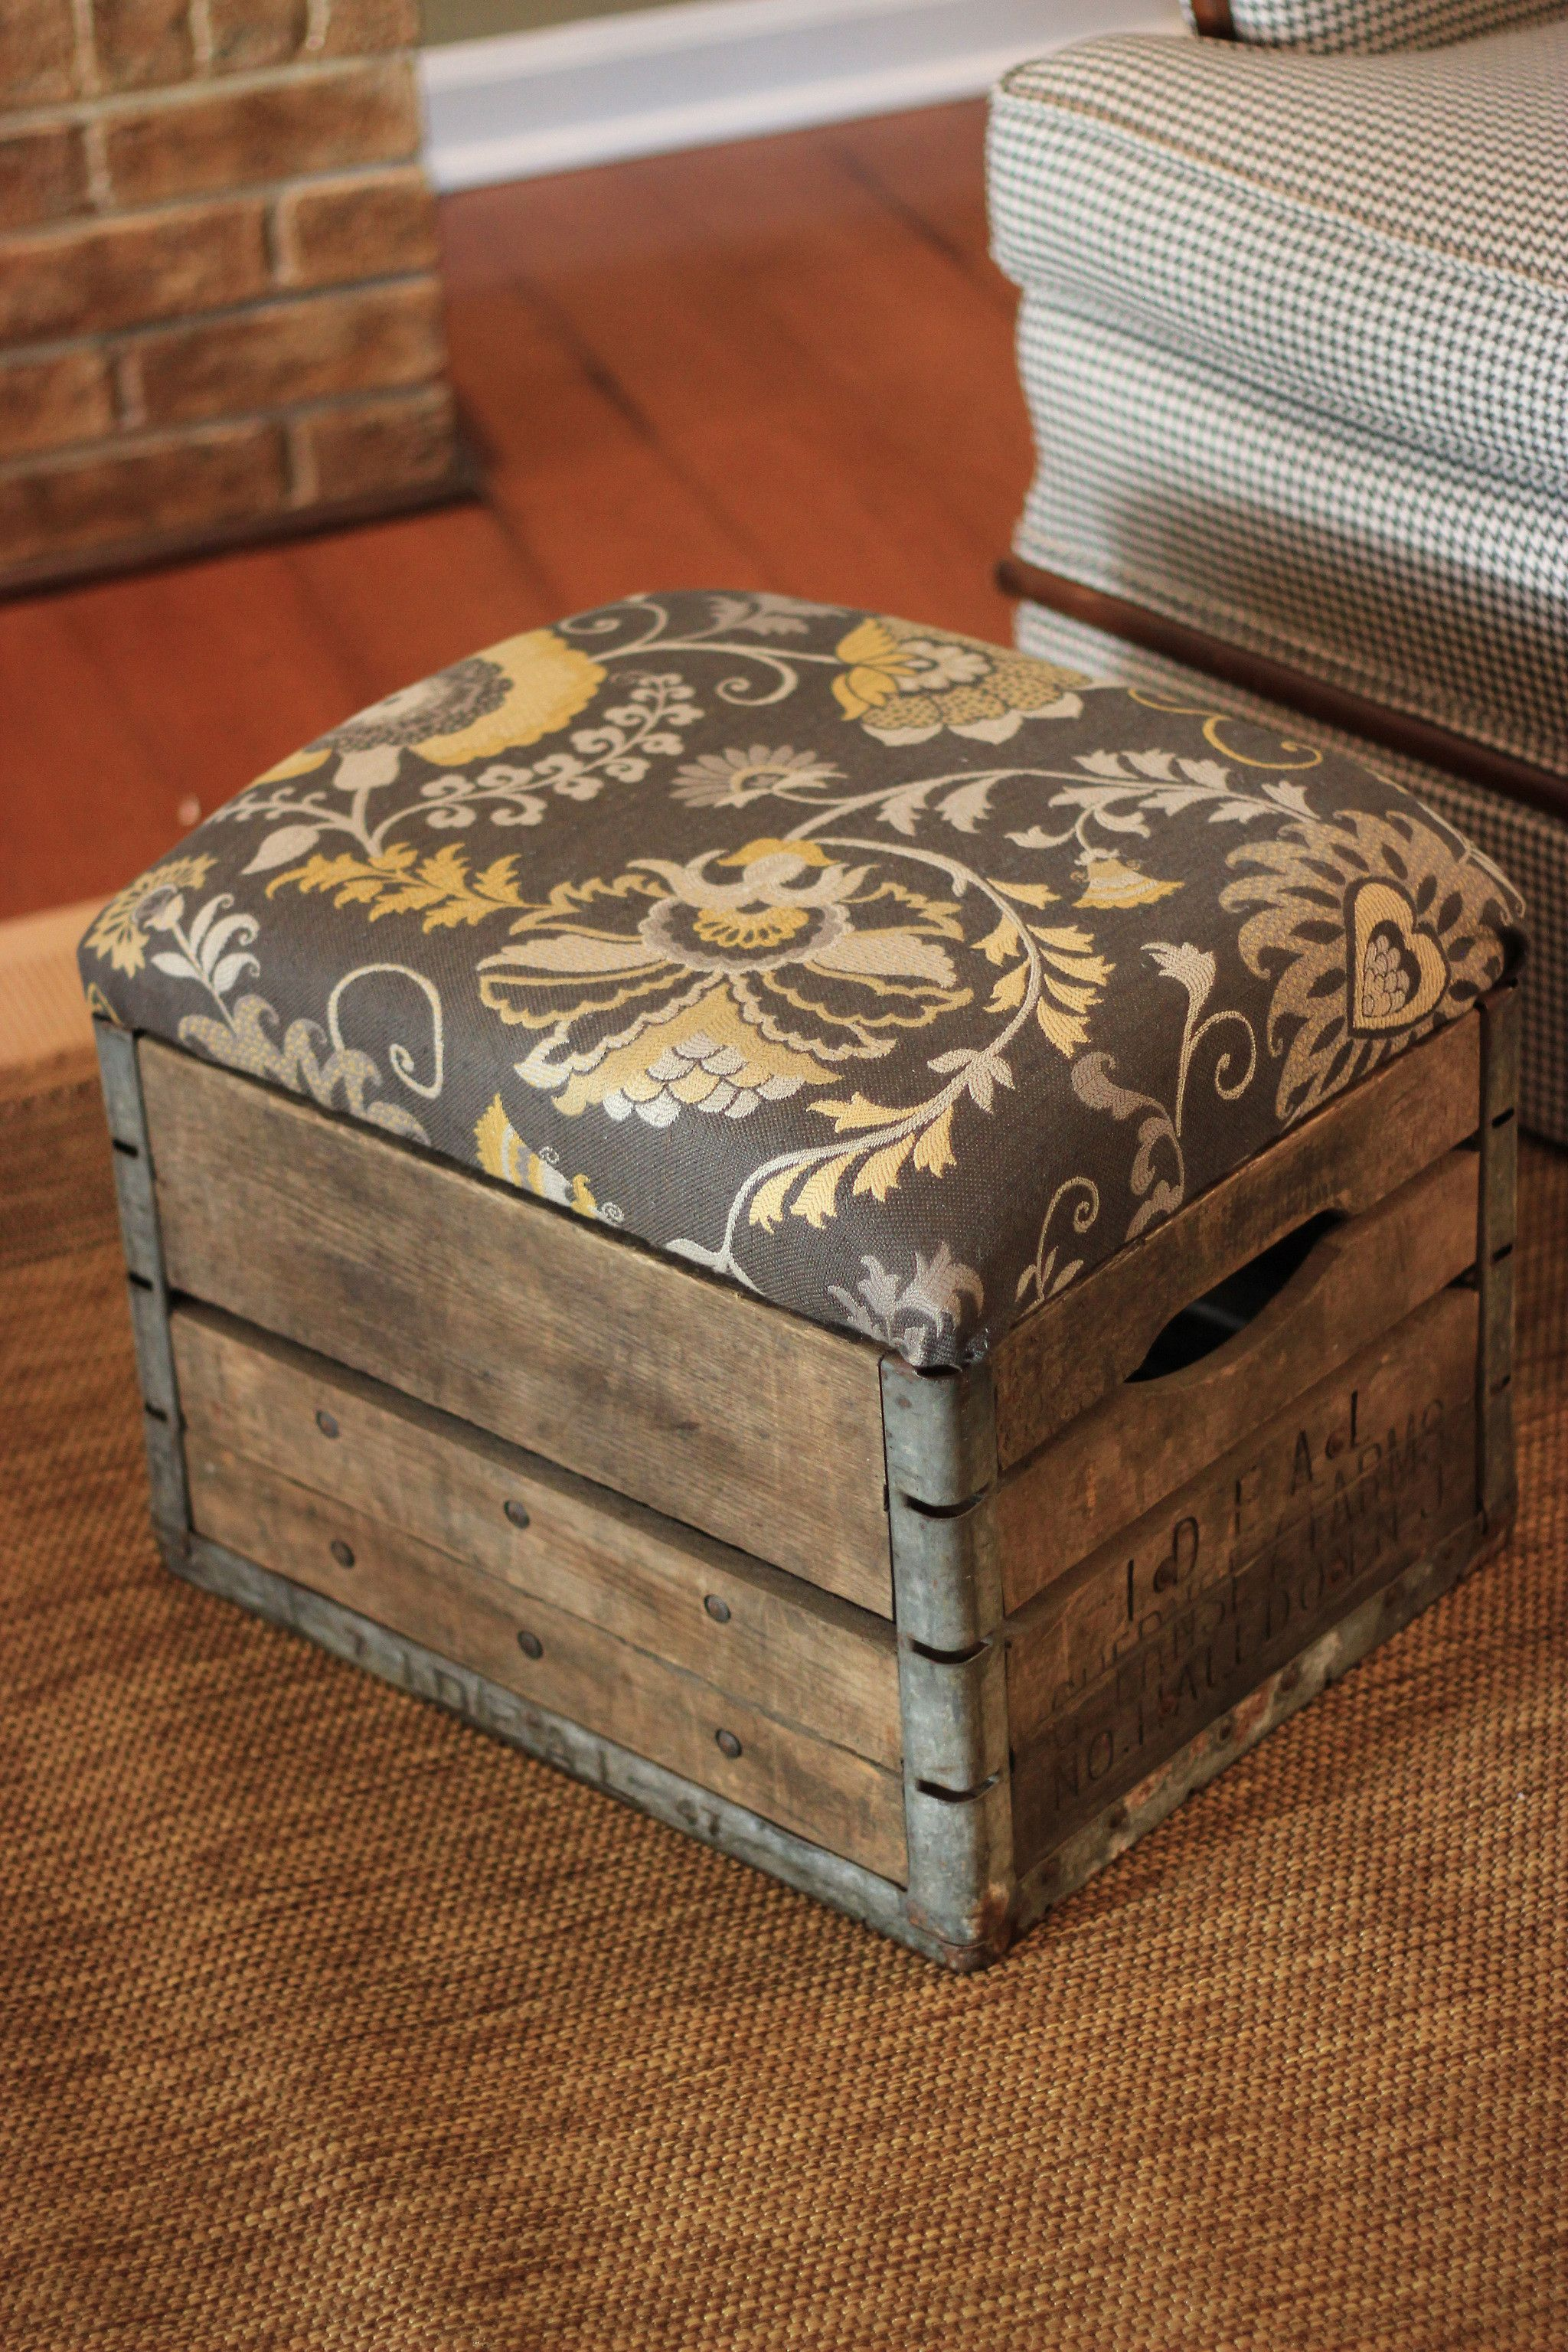 How to Refinish Wooden Crates